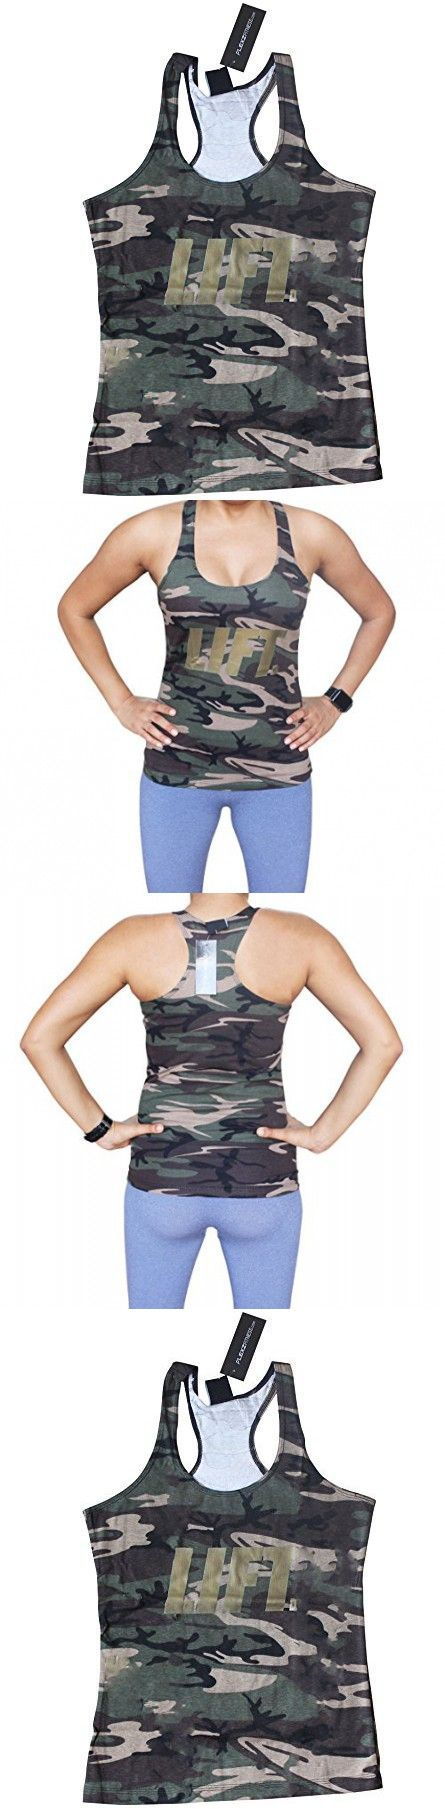 Women's Camo Lift tank top for Crossfit Fitness Bodybuilding Running Workout Zumba ladies X-Small